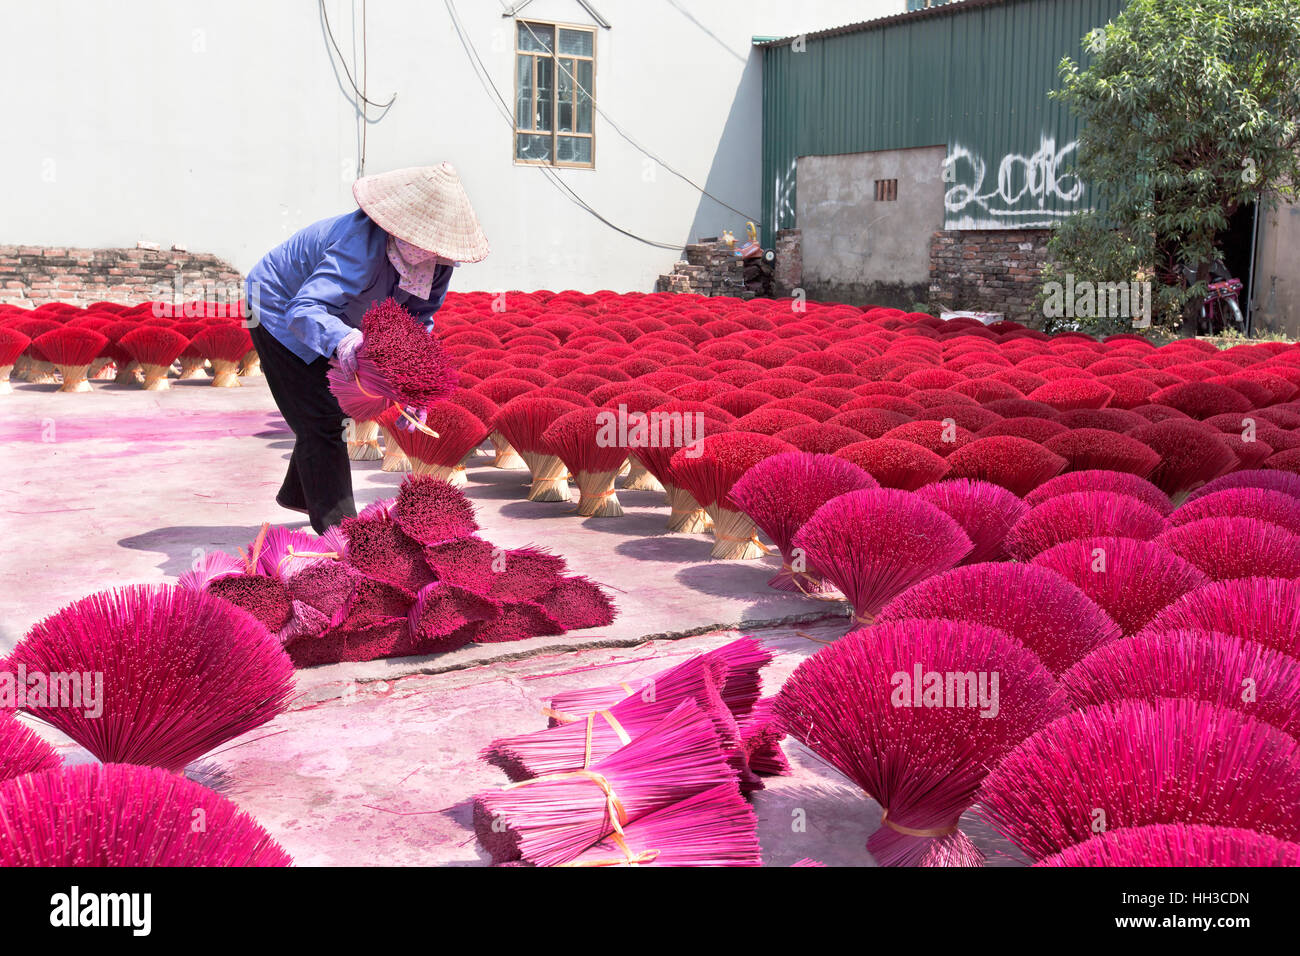 Worker preparing  purple & red bamboo sticks for incense application. - Stock Image